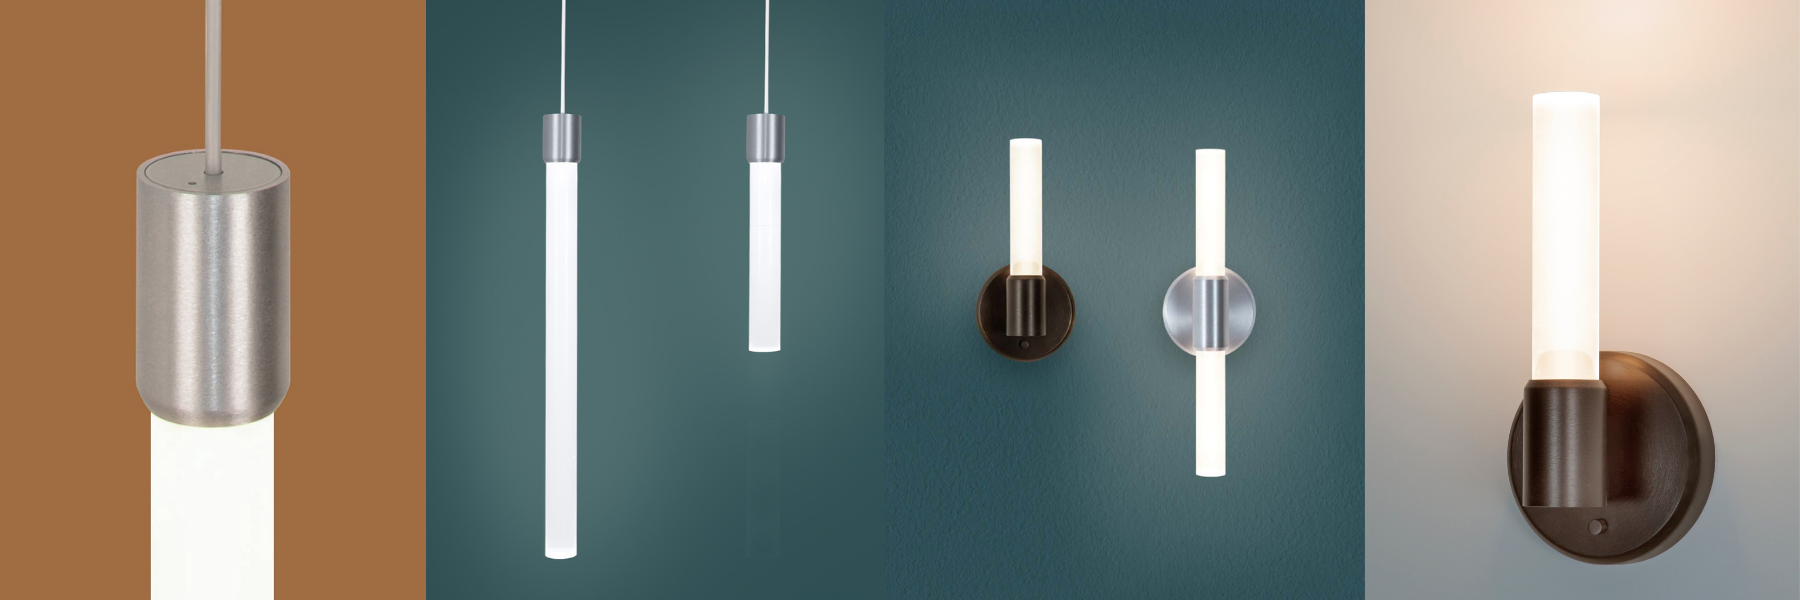 Theo LED light rod pendant and sconce collection